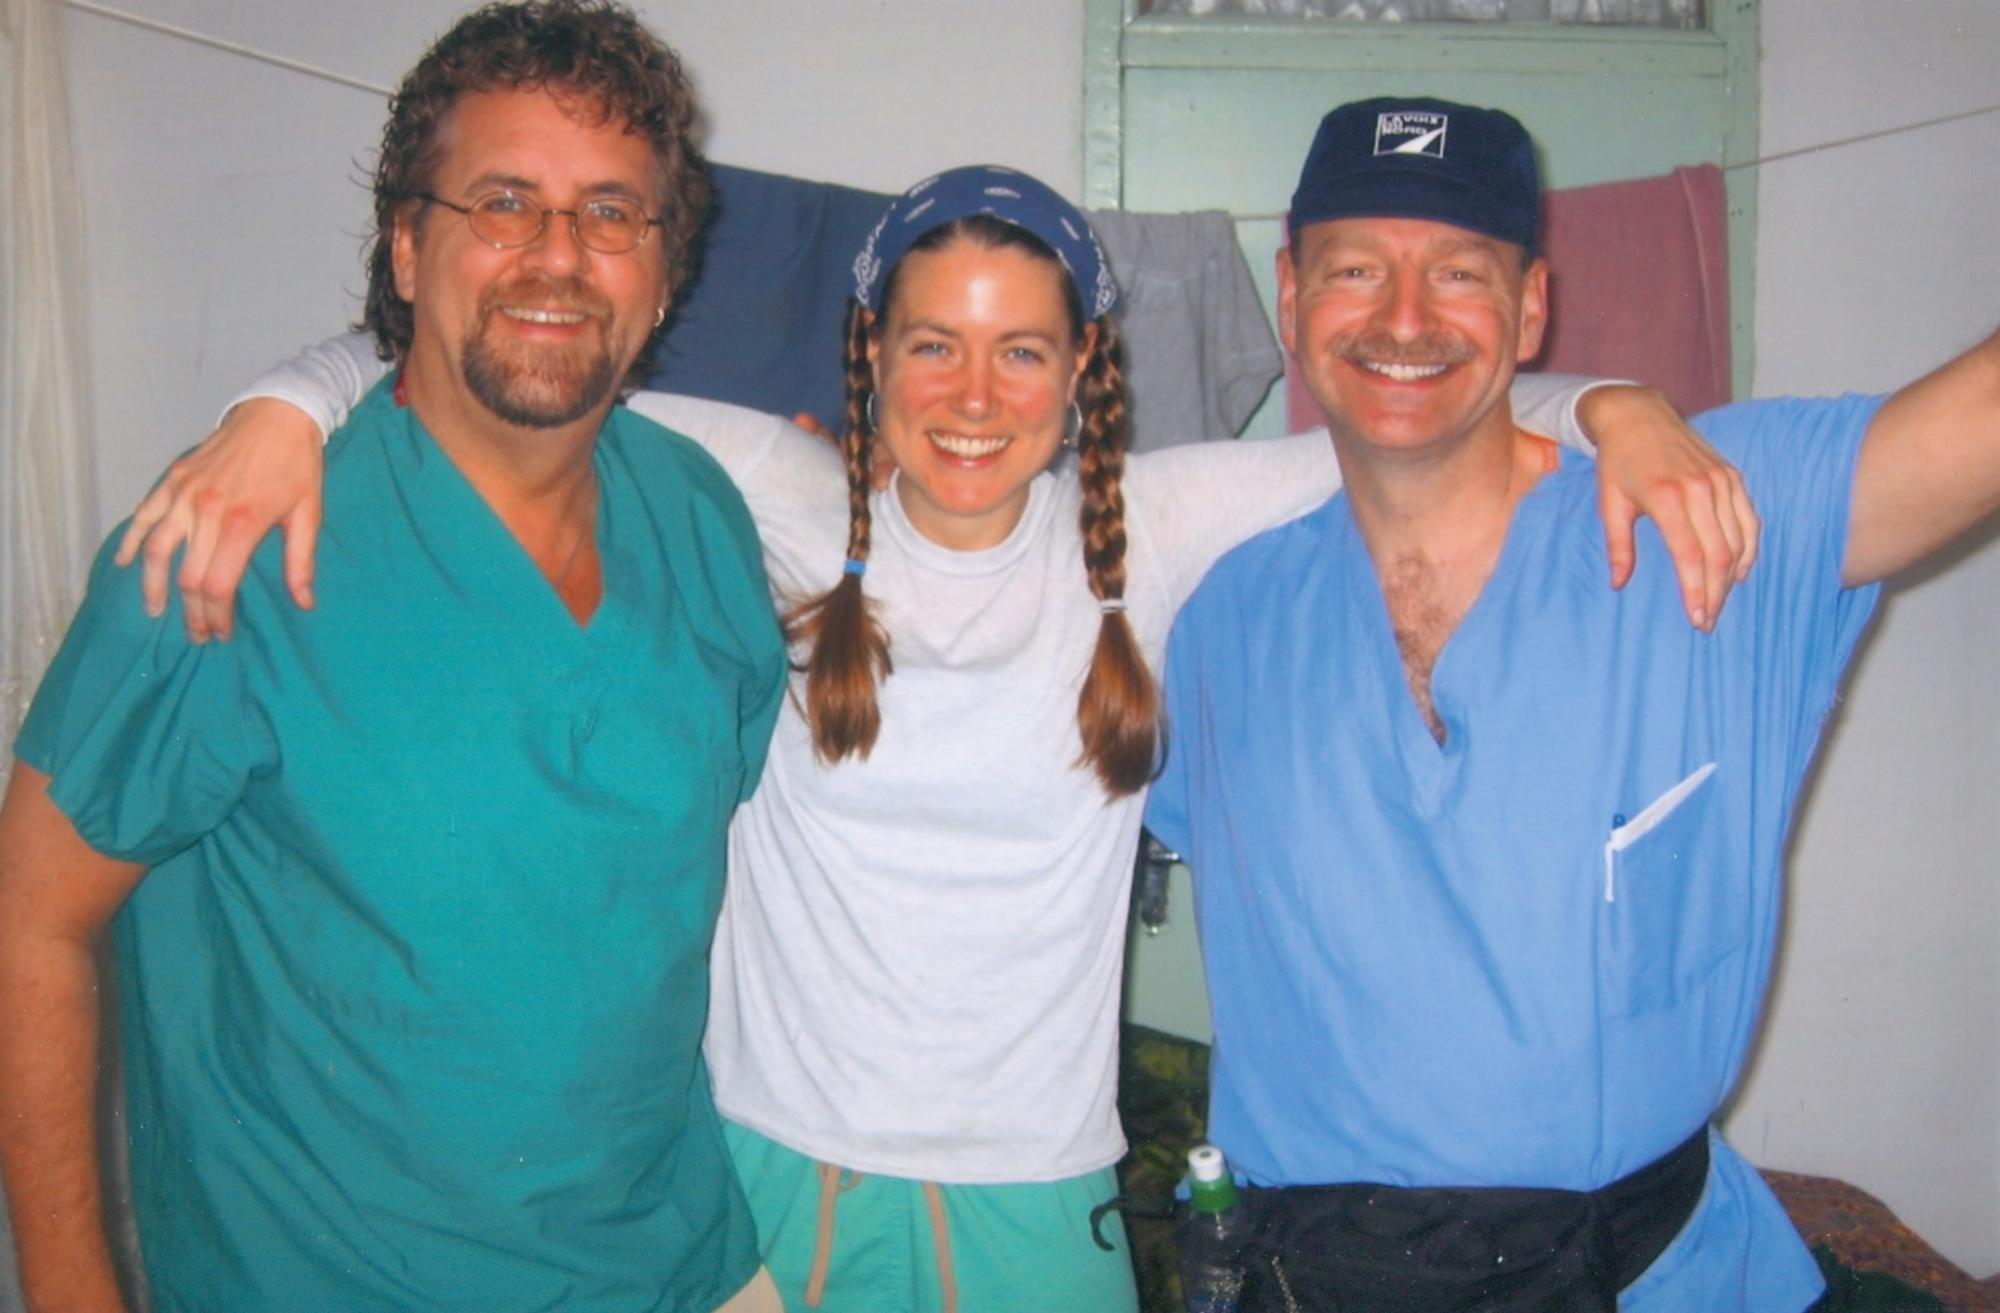 Dr_Lochen_Dr_Vrabec_with_female_team_member_Feb_2003_image54.jpg